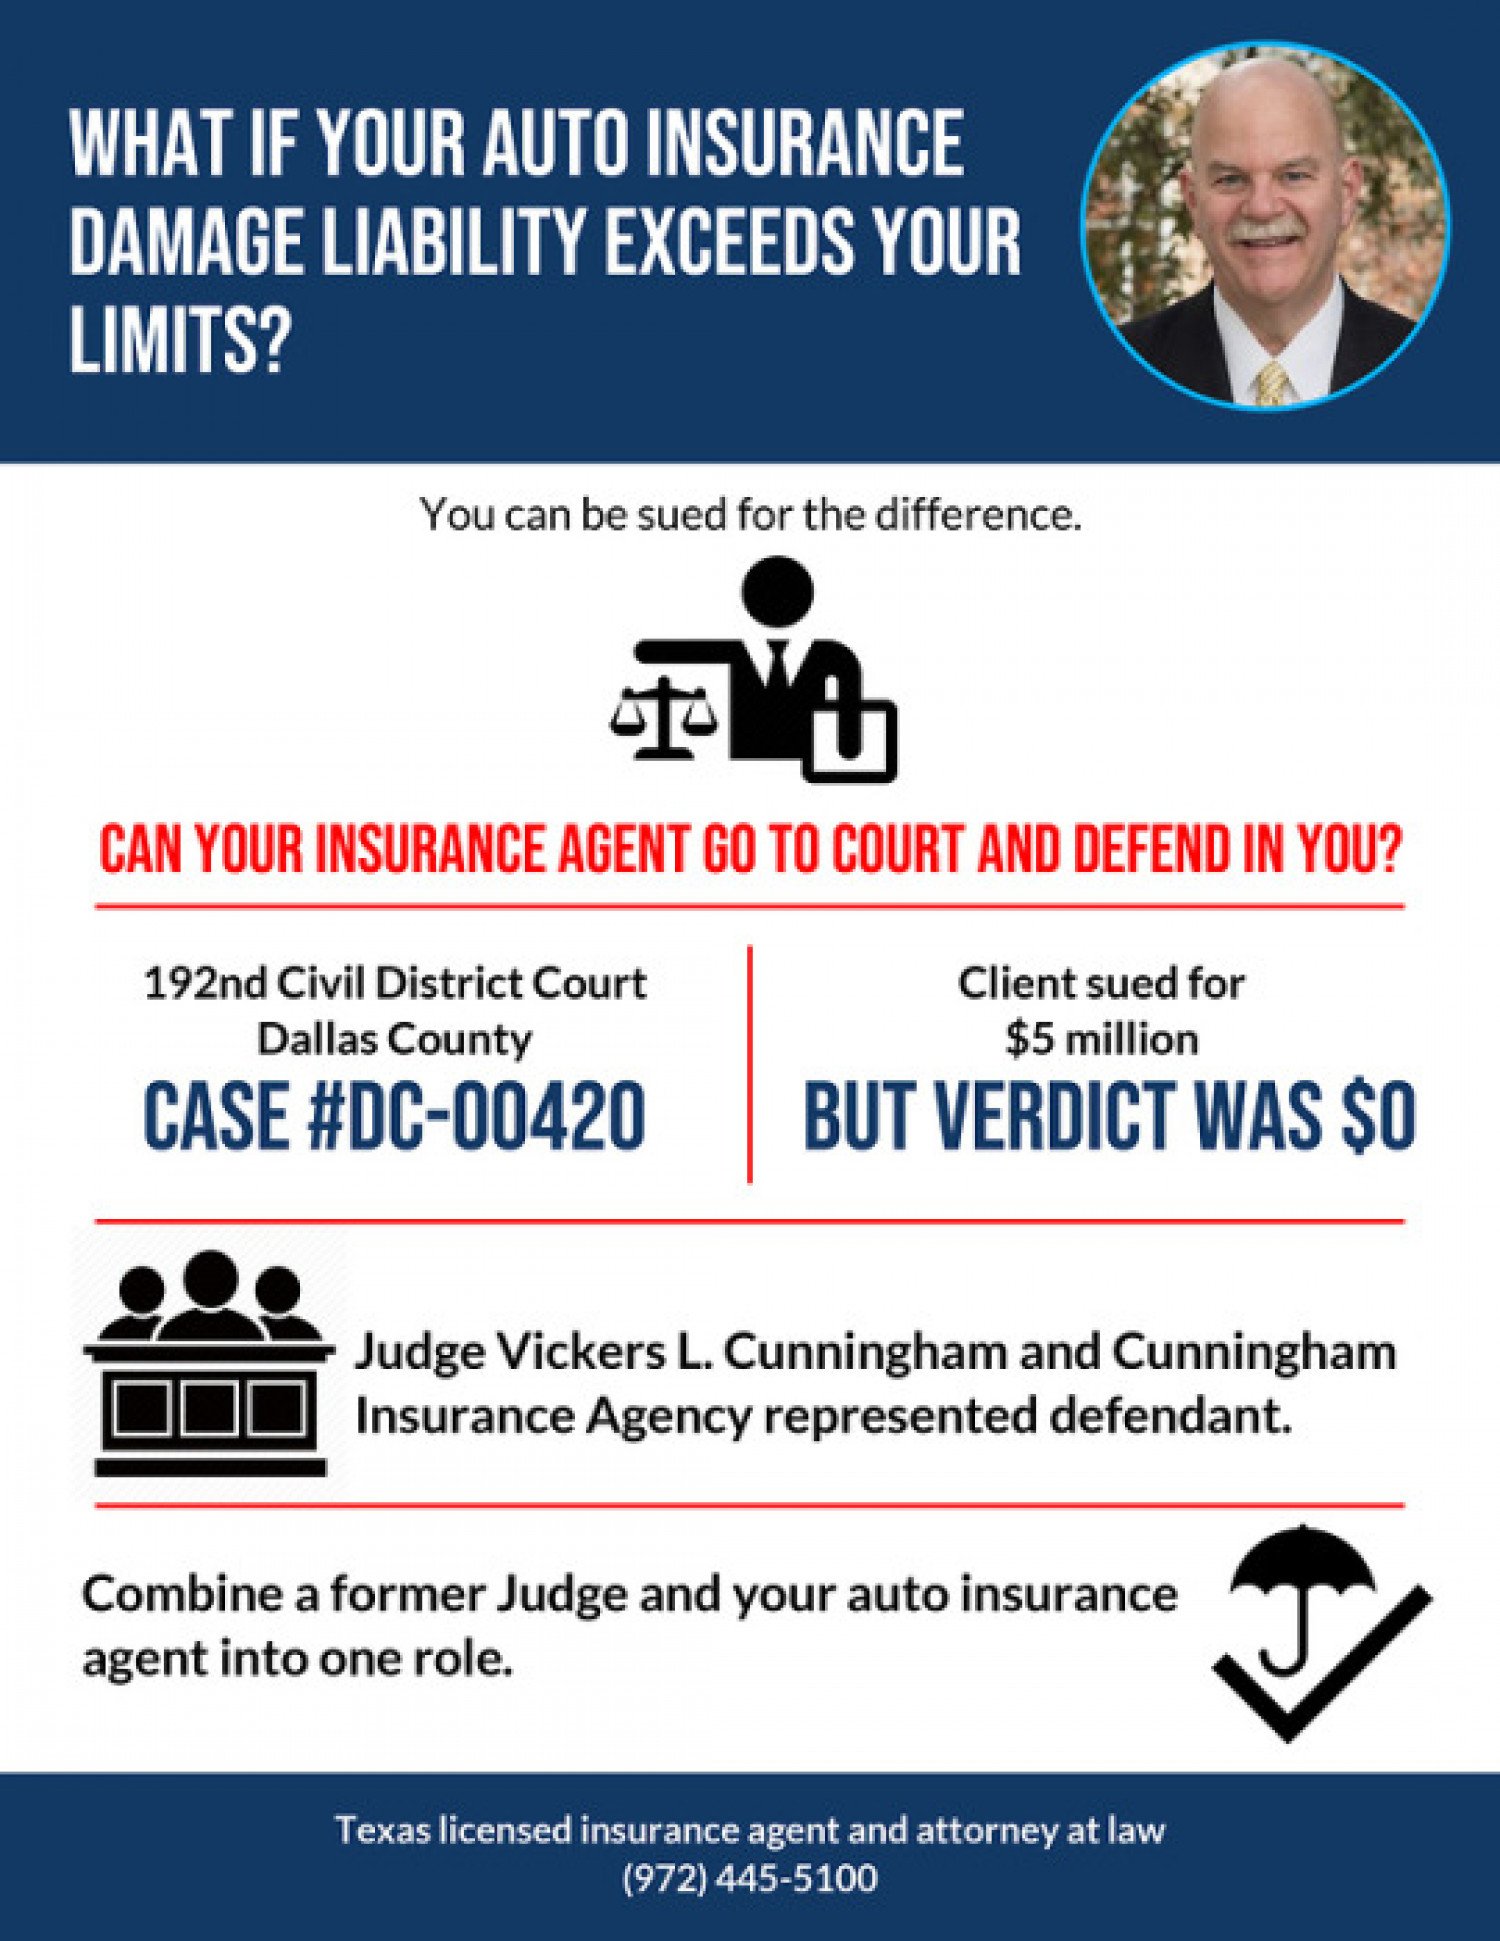 Judge Vickers Lee Cunningham - Insurance Agent Dallas Infographic